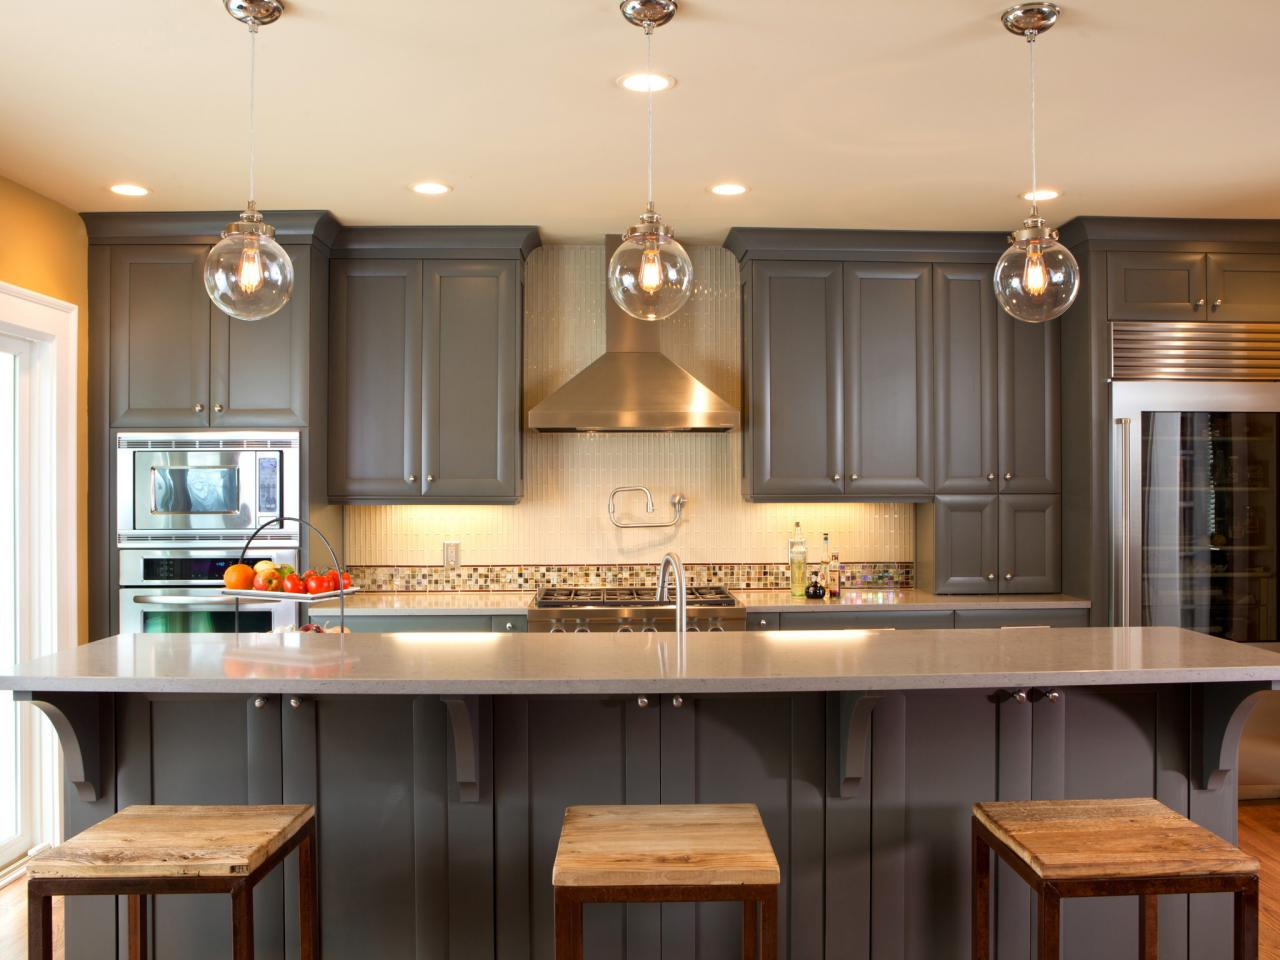 Ideas for Painting Kitchen Cabinets + Pictures From HGTV | HGTV